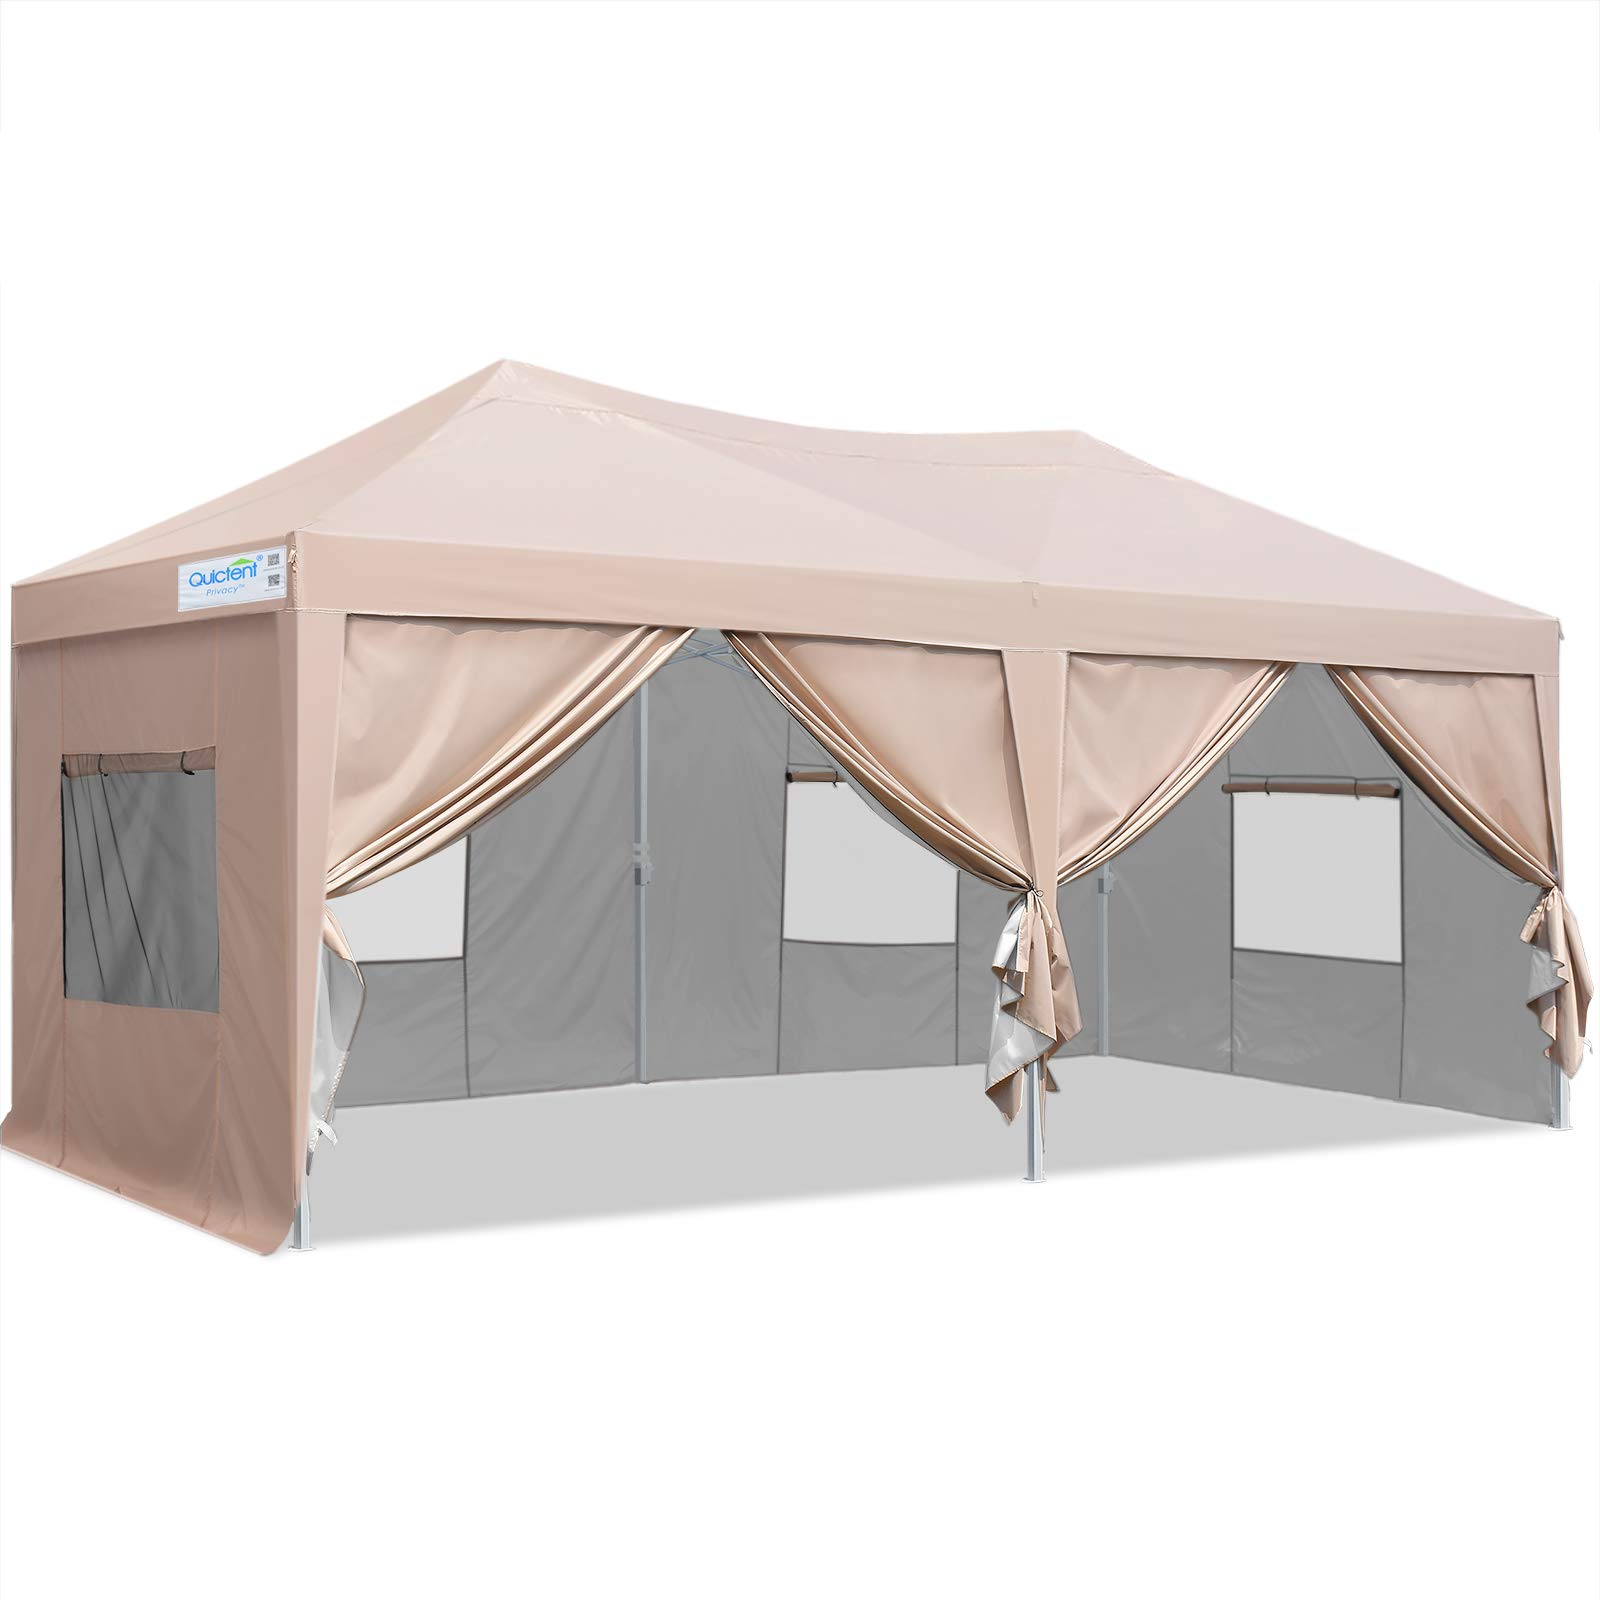 Quictent Privacy 10x20 ft Ez Pop up Canopy Tent Enclosed Instant Shelter Party Tent Event Gazebo with Sidewalls Waterproof (Beige)